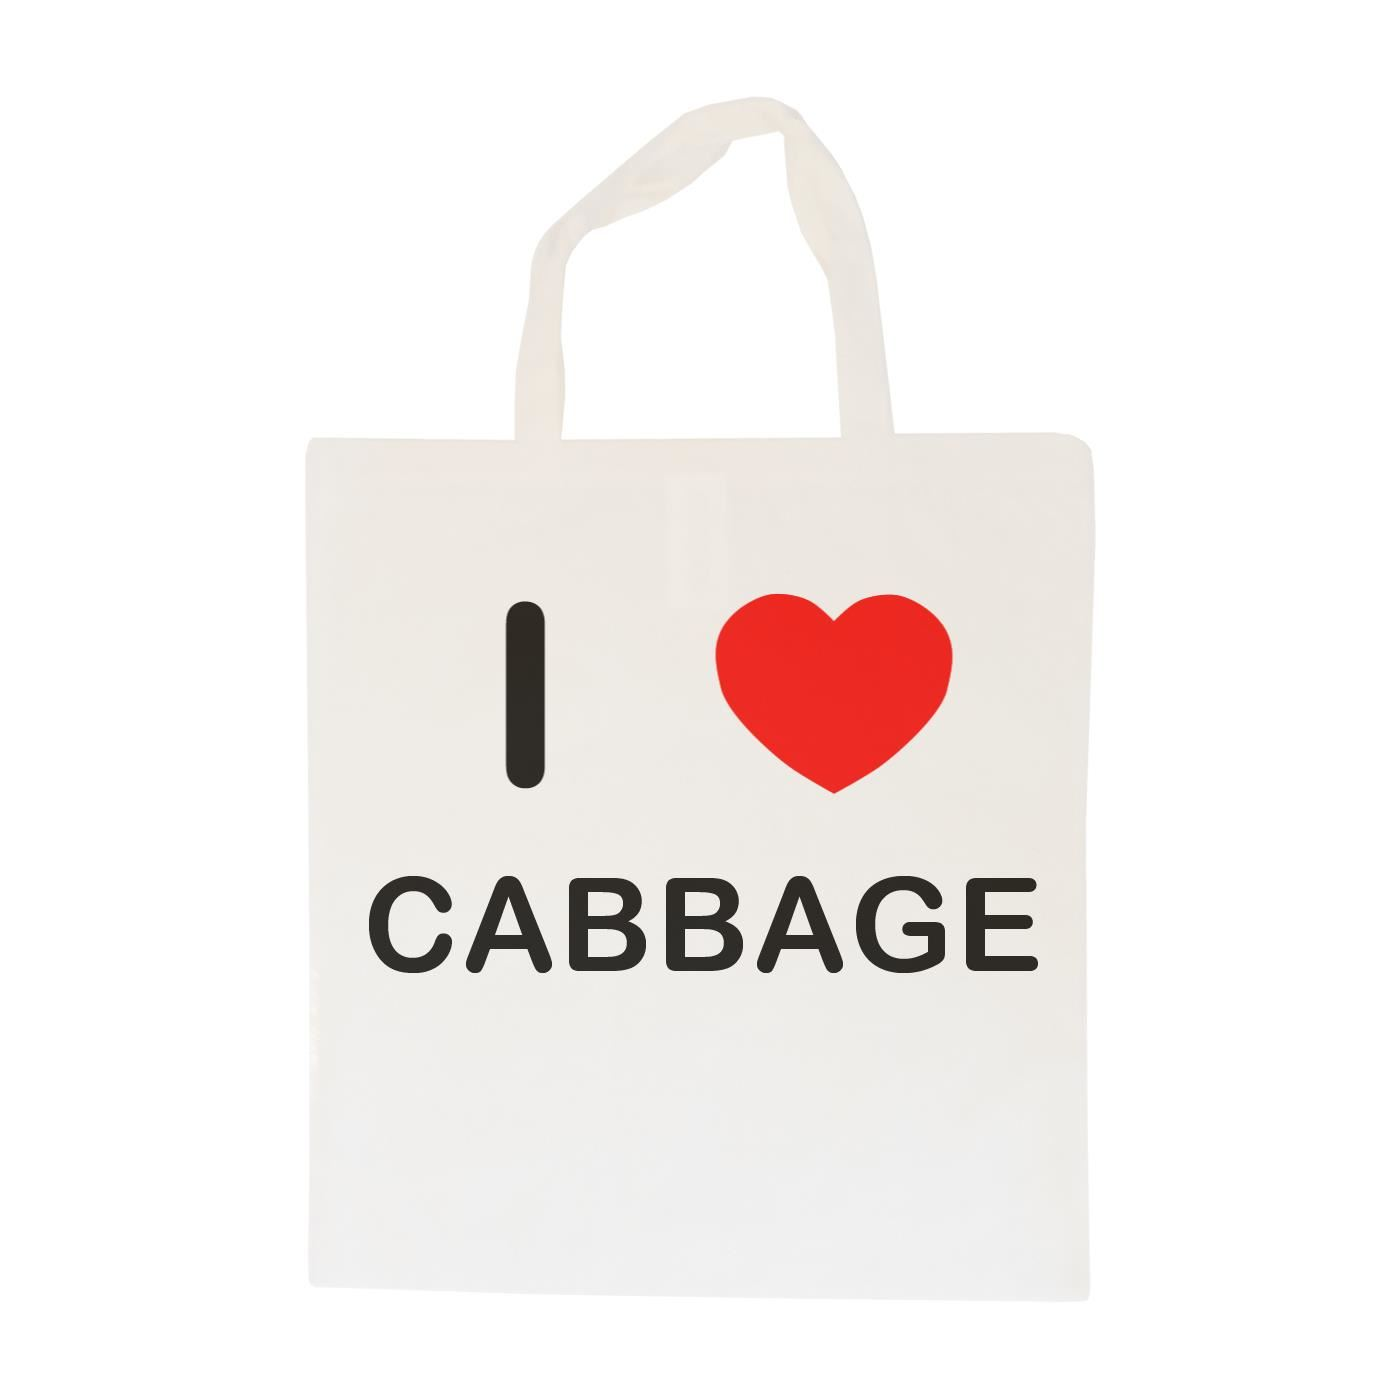 I Love Cabbage - Cotton Bag | Size choice Tote, Shopper or Sling